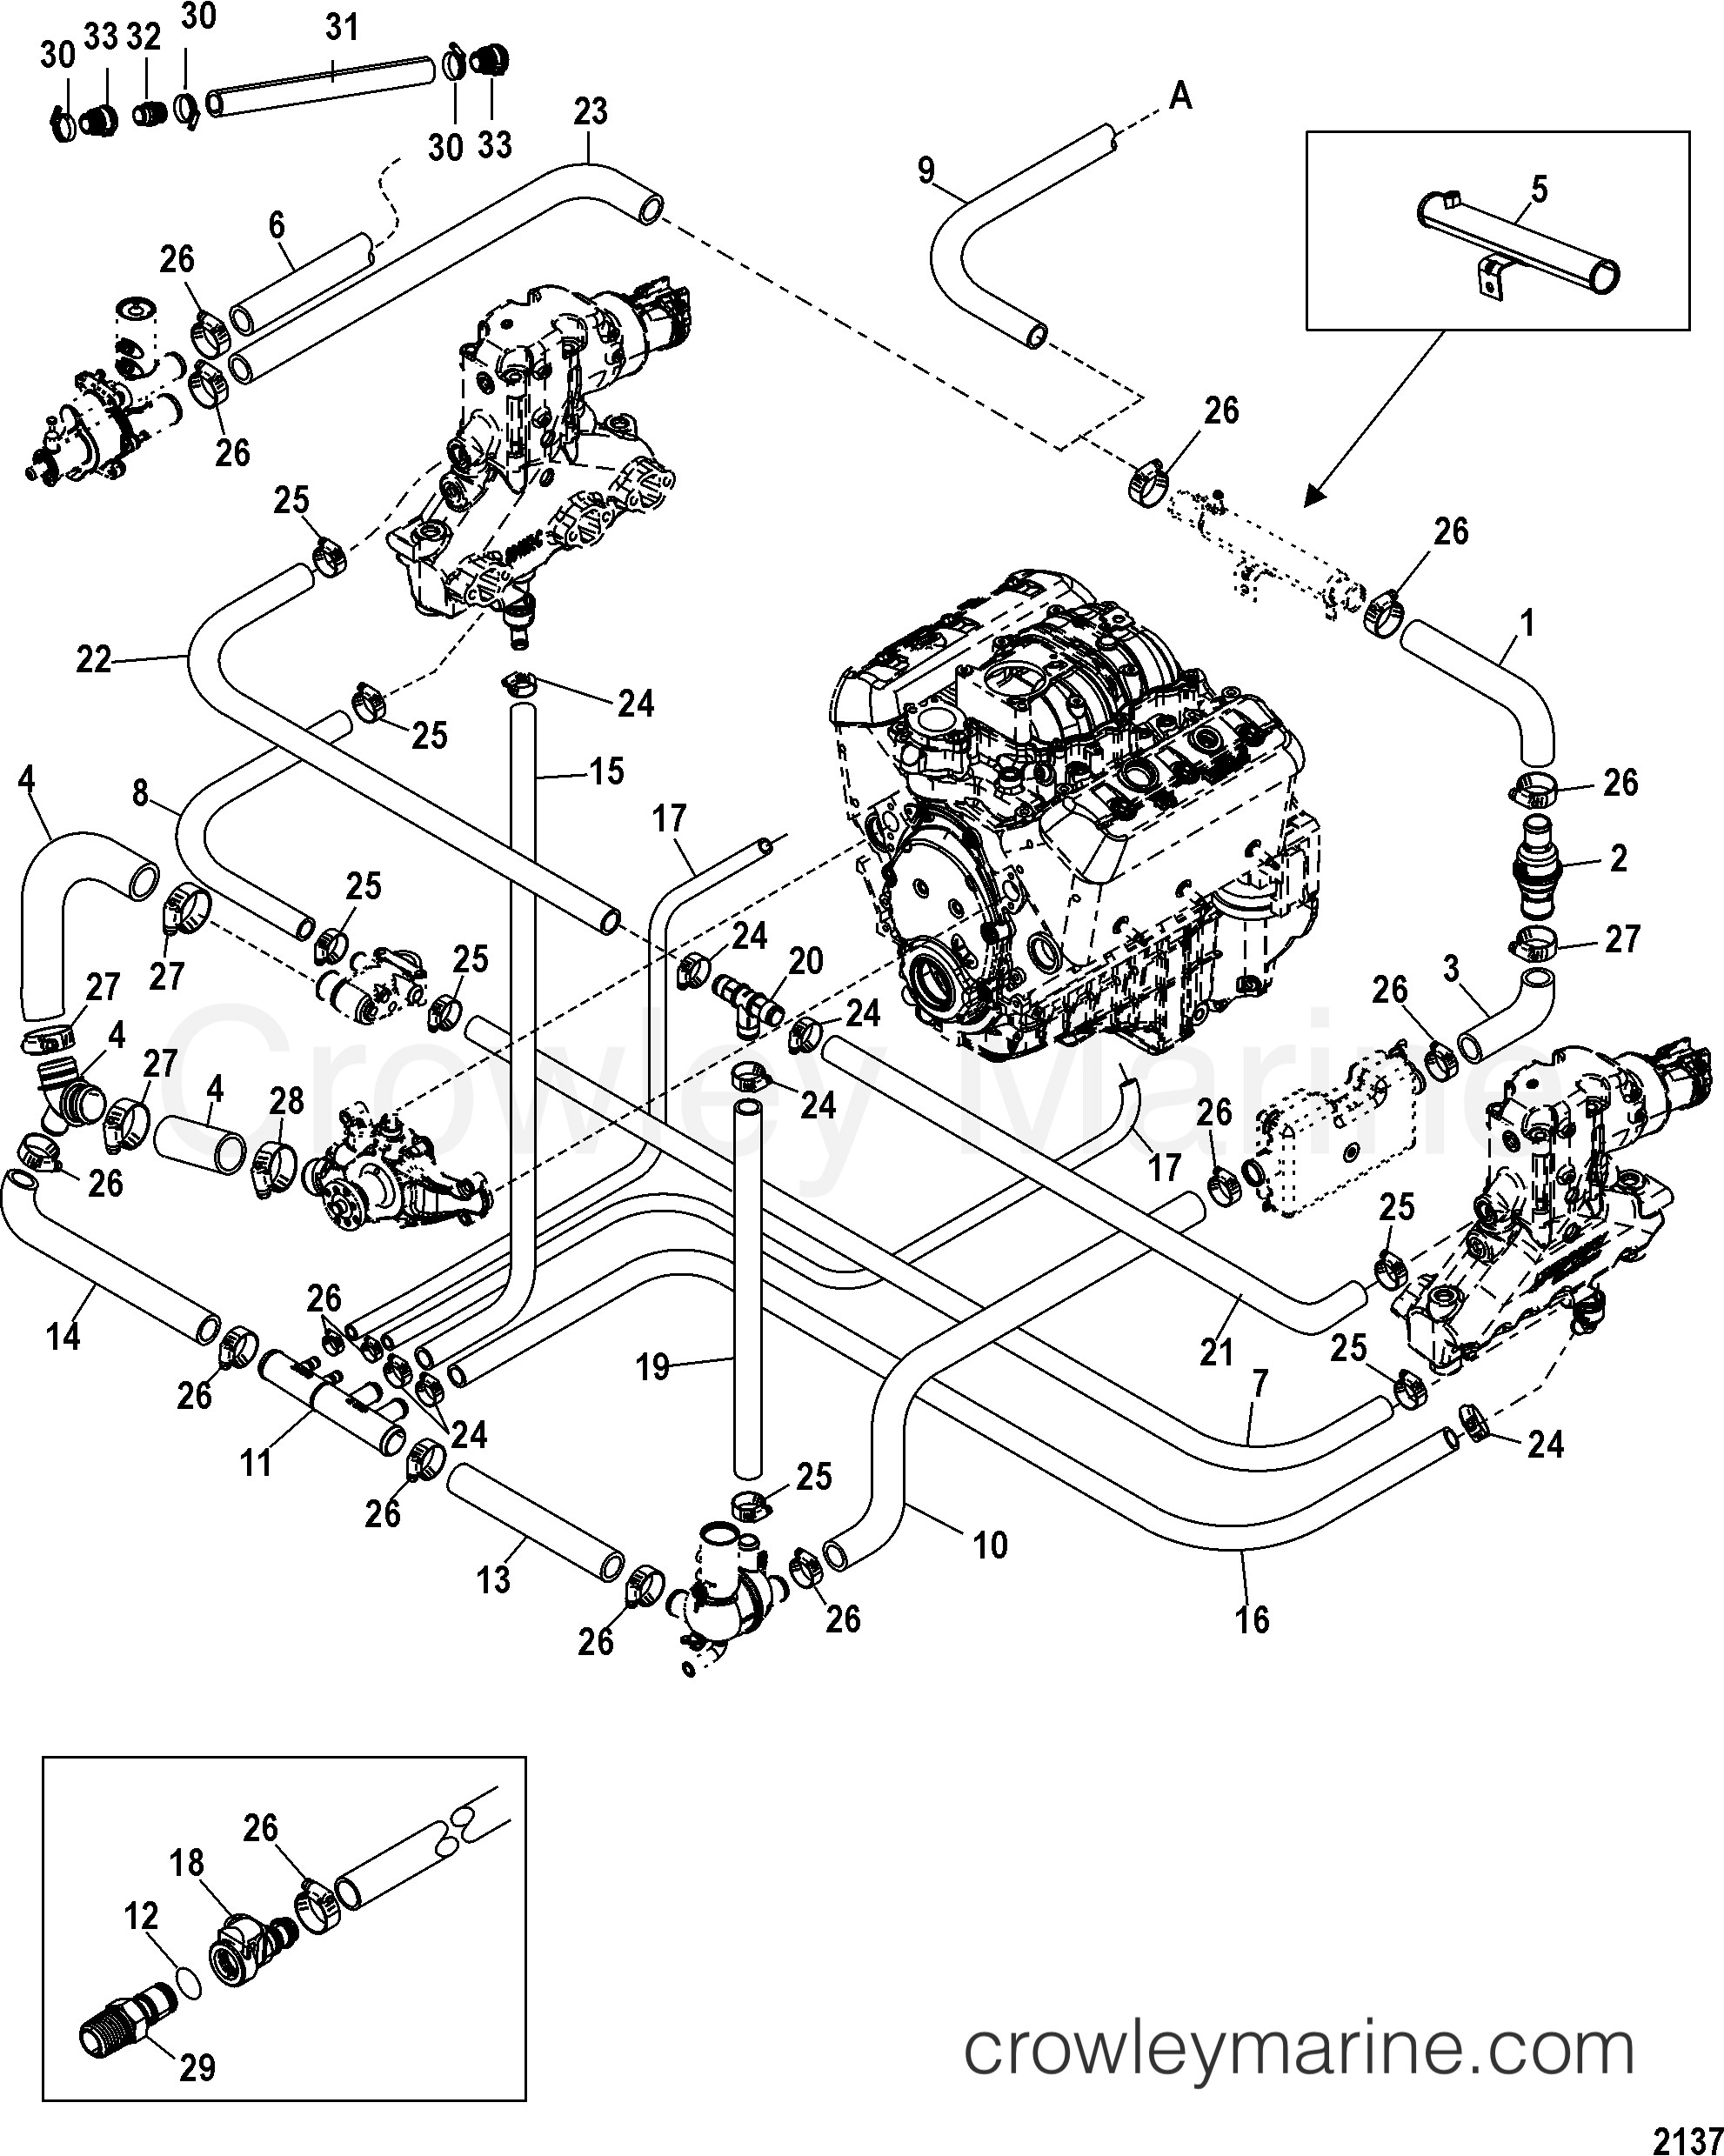 4.3 Mercruiser Cooling System Diagram Standard Cooling System Single and Three Point Drain 1998 Mercruiser 4 3l [alpha Mpi